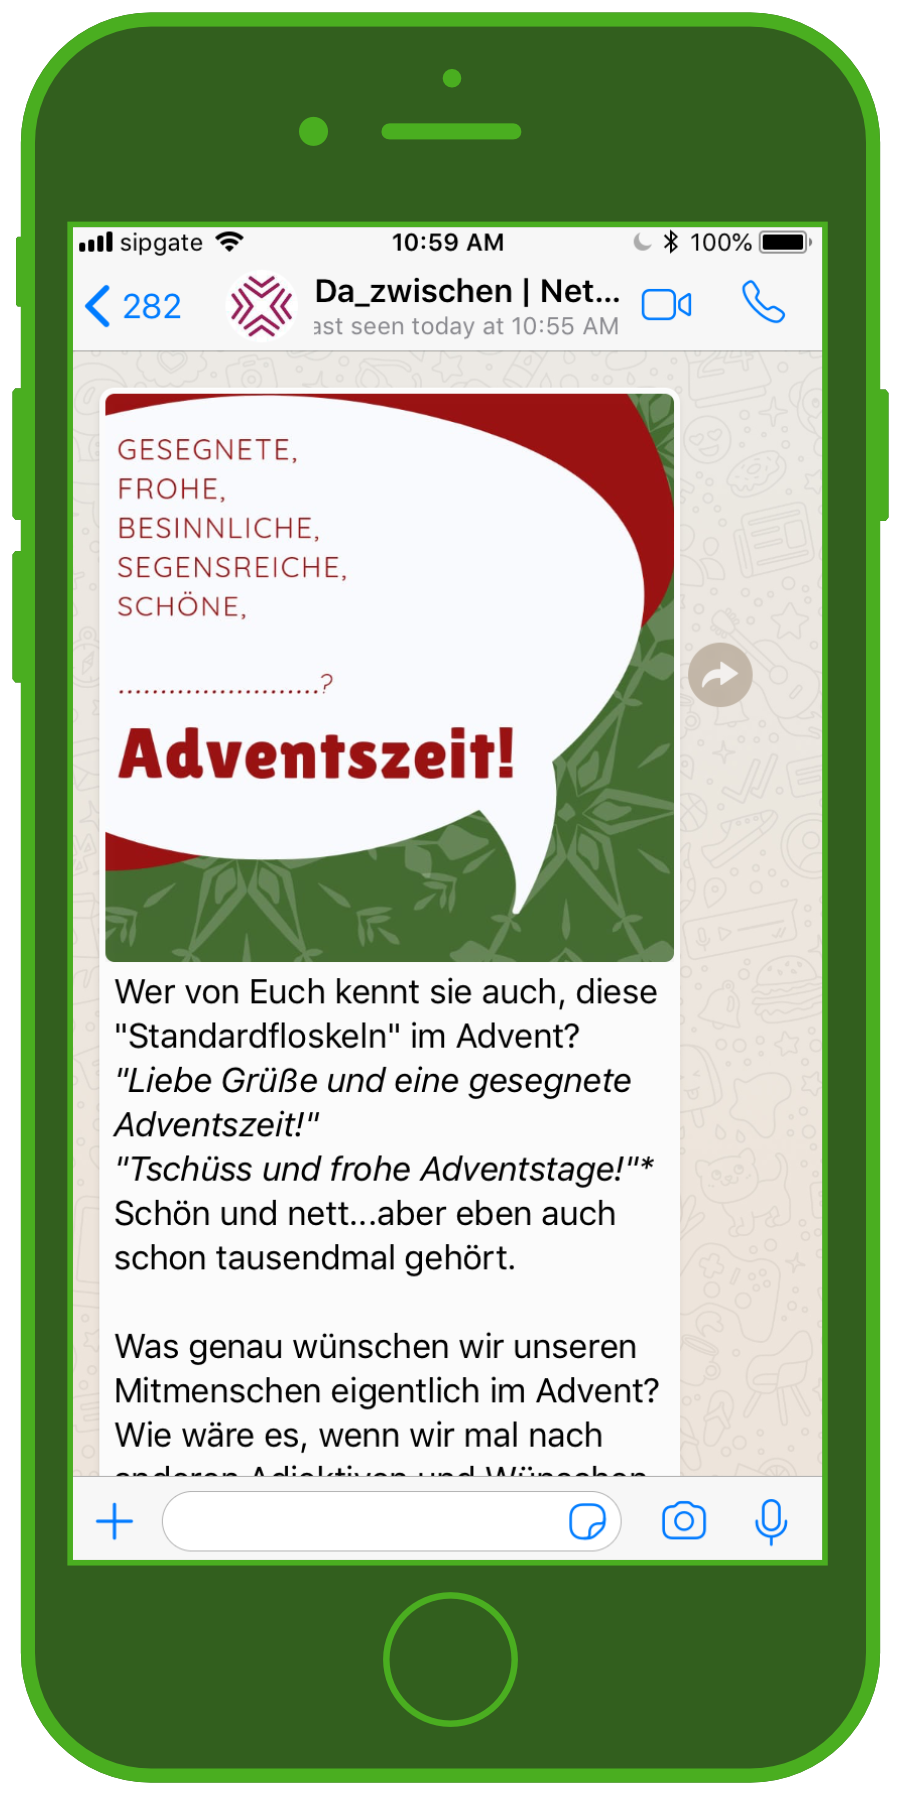 da_zwischen WhatsApp Screenshot Adventszeit